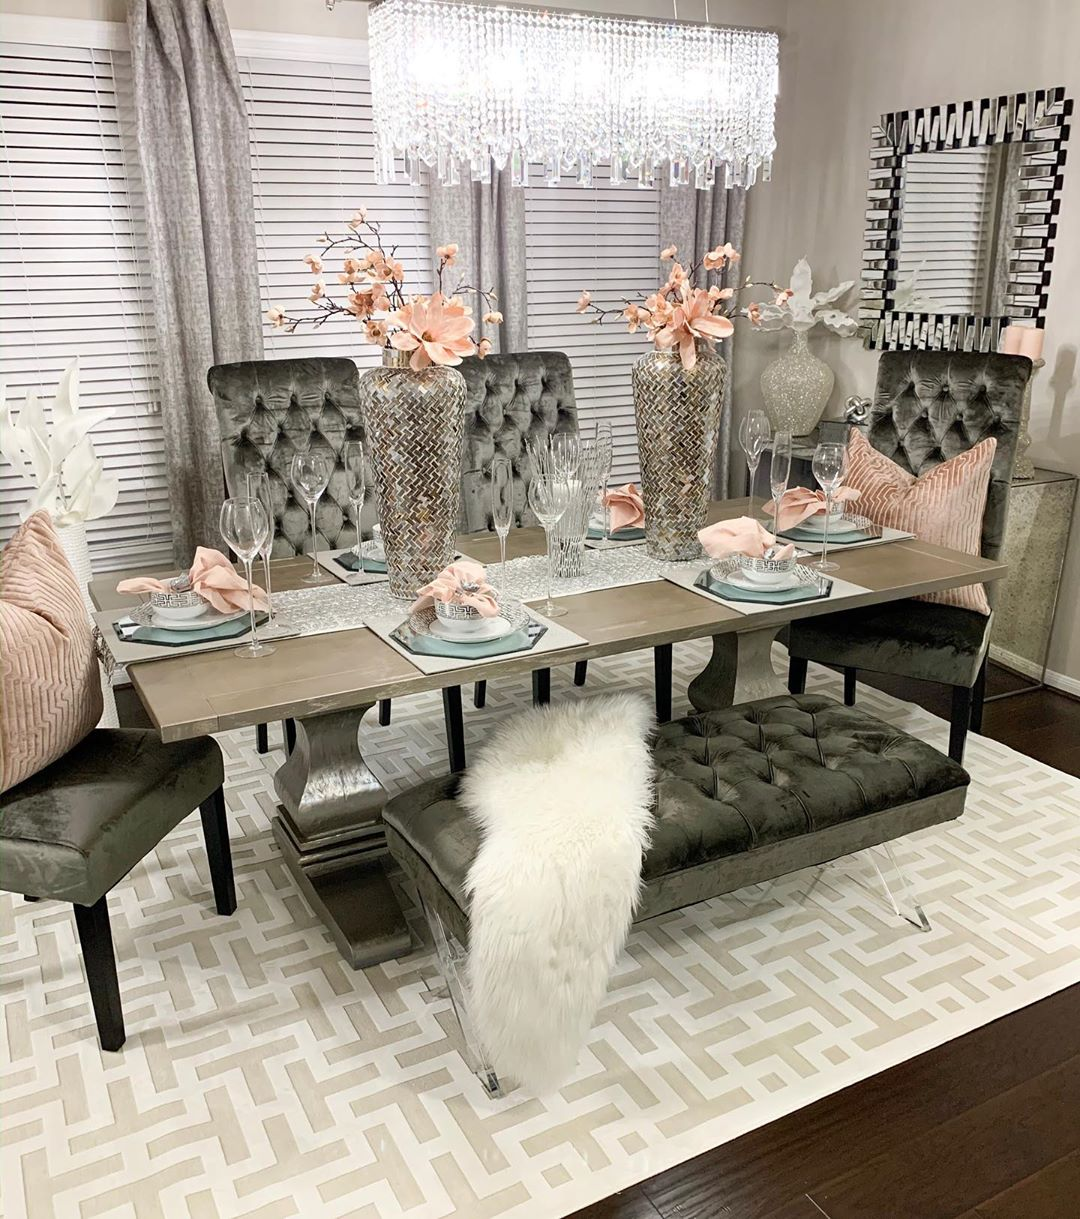 💕Happy Hump Day💕 I'M So Excited To Sha Diningroomdecor - Home Decor